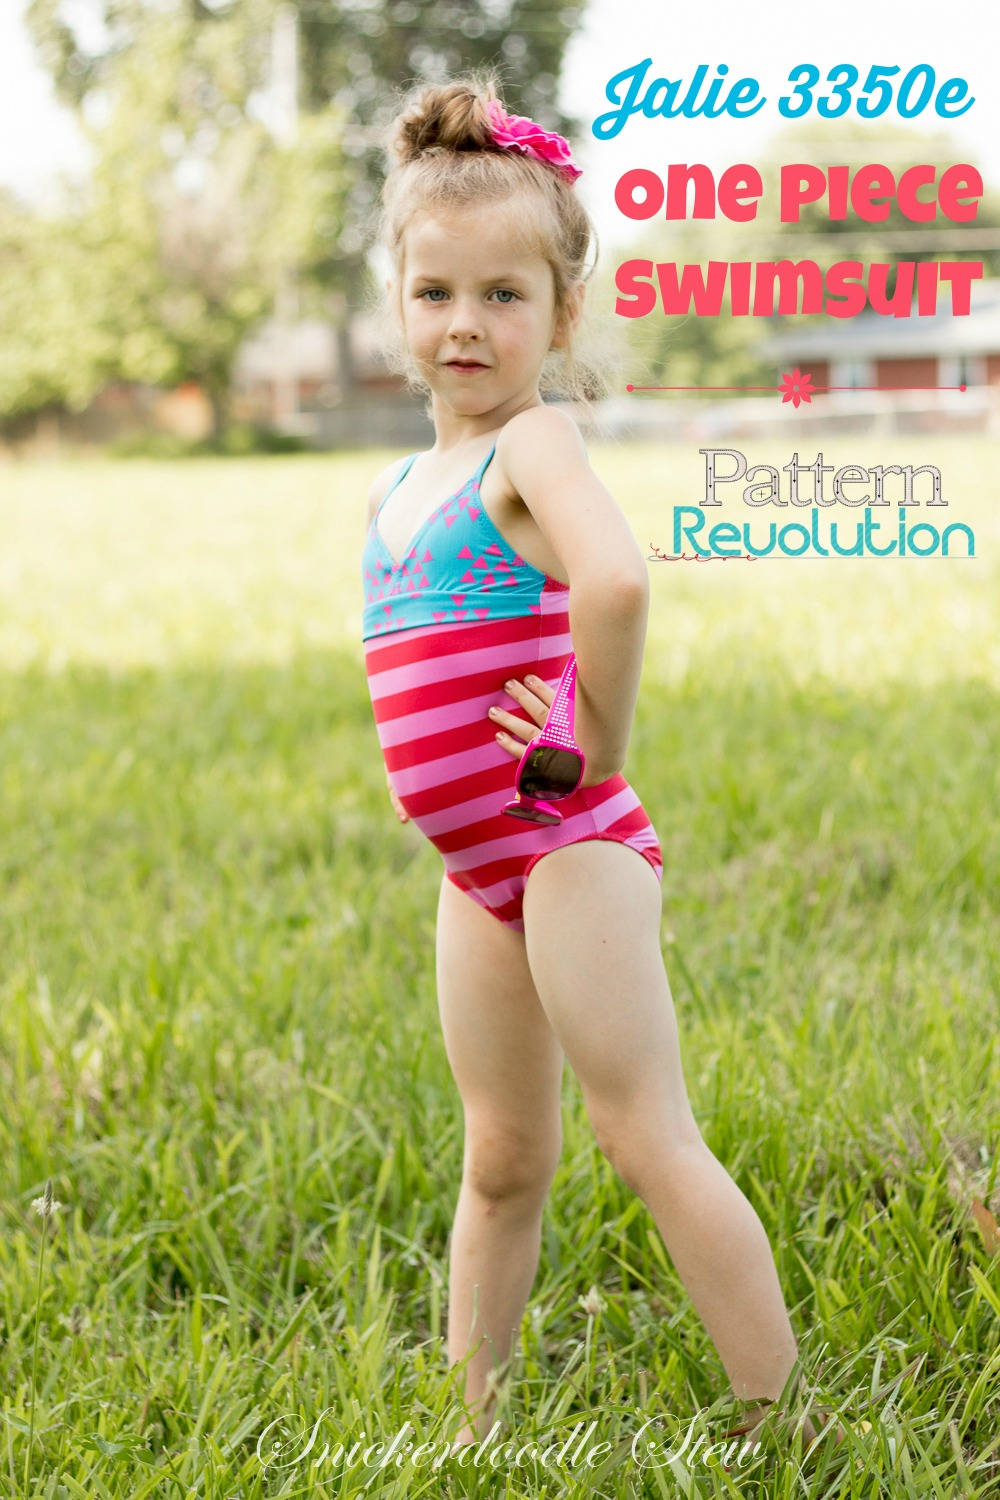 One Piece Swimsuits 3350e By Jalie Patterns Pattern